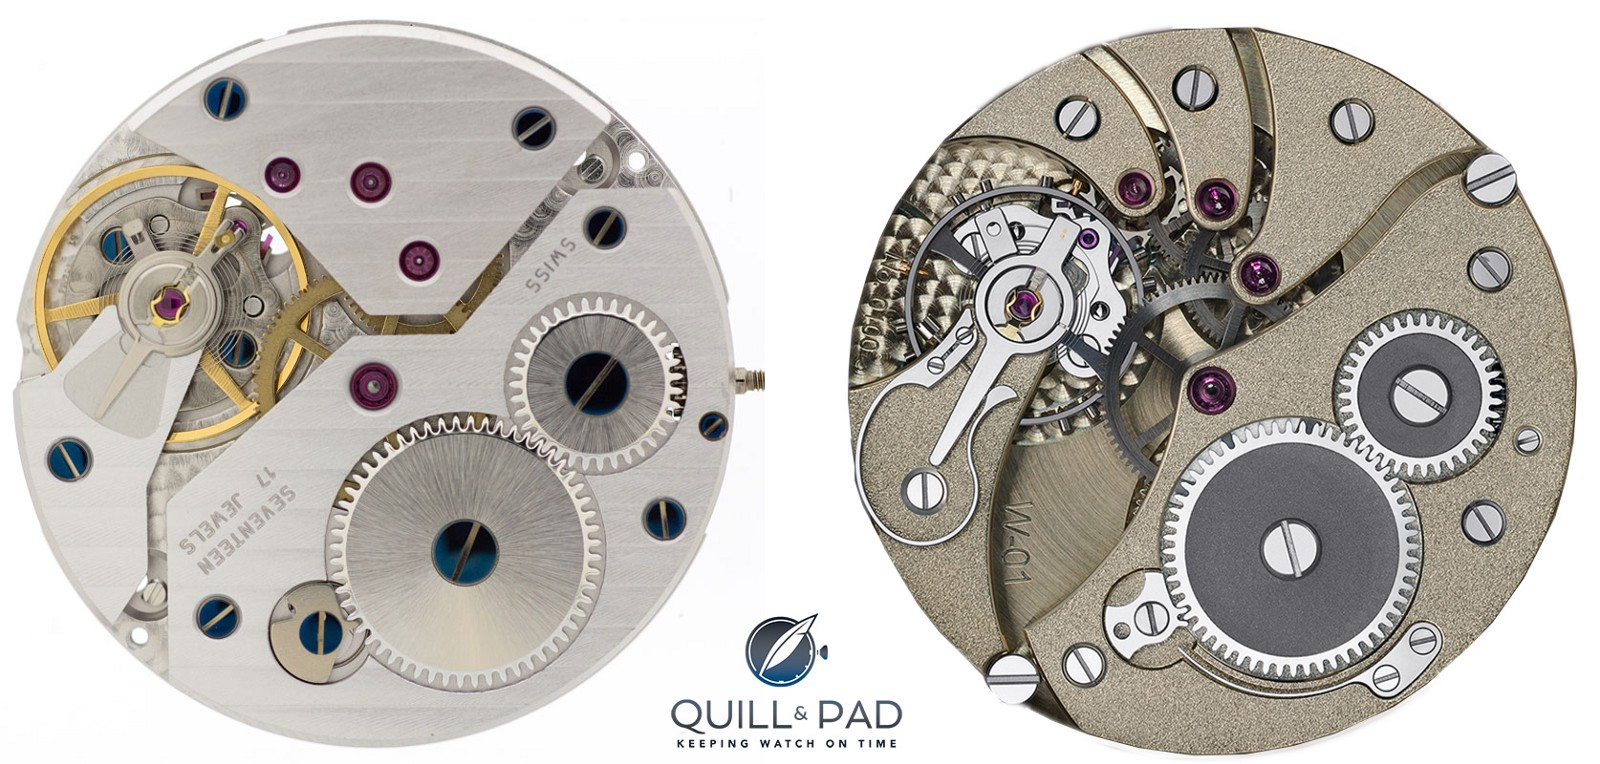 Standard Unitas 6498 movement left compared with the modified and hand finished WOSTEP Only Watch movement